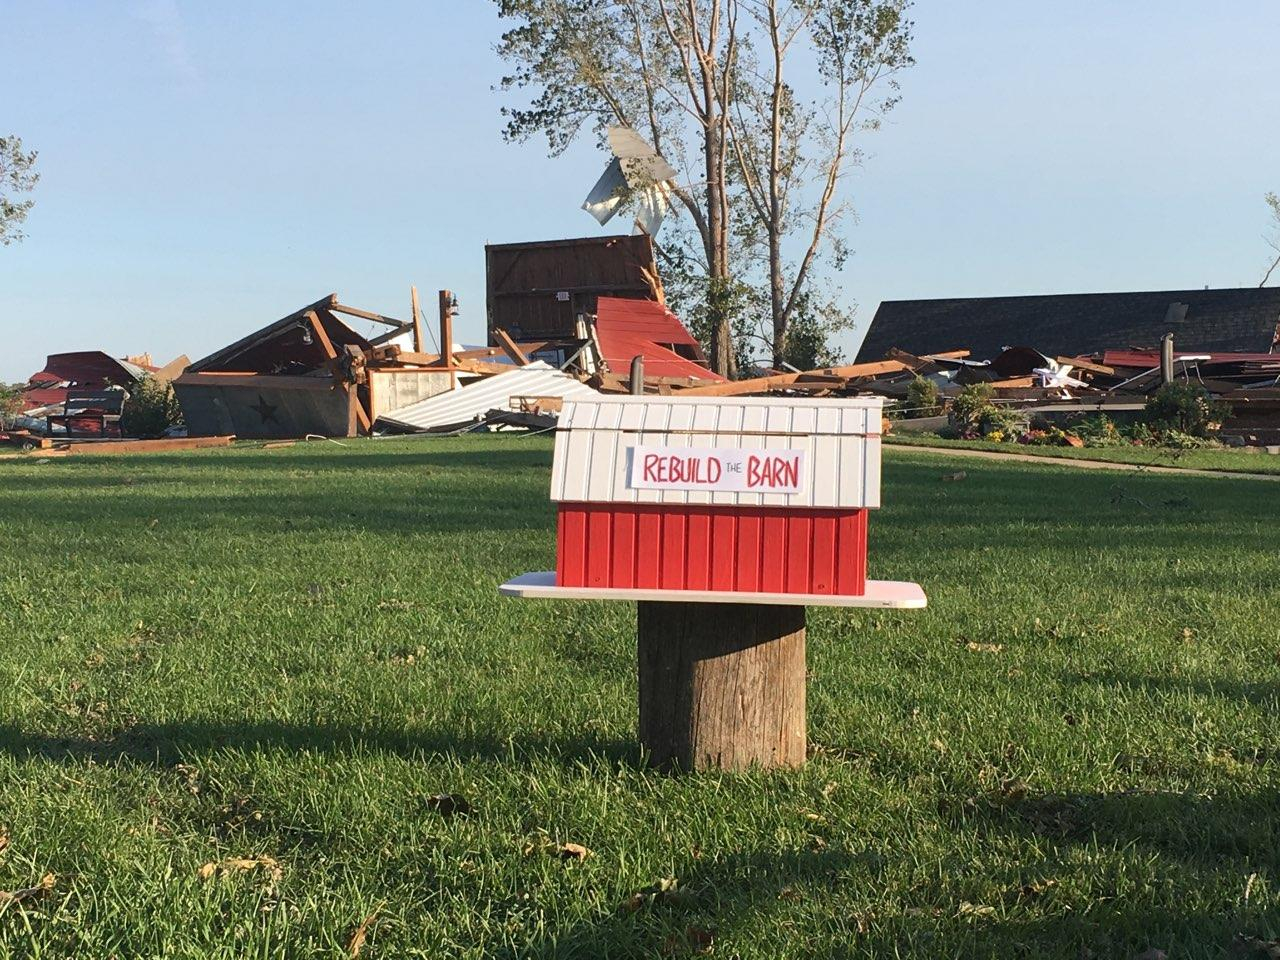 Image courtesy of Red Barn Farm webpage showing the destroyed barn in the background. 13 people received the WEA tornado warning on their phone, took shelter underground, and were unharmed from an EF-2 tornado.